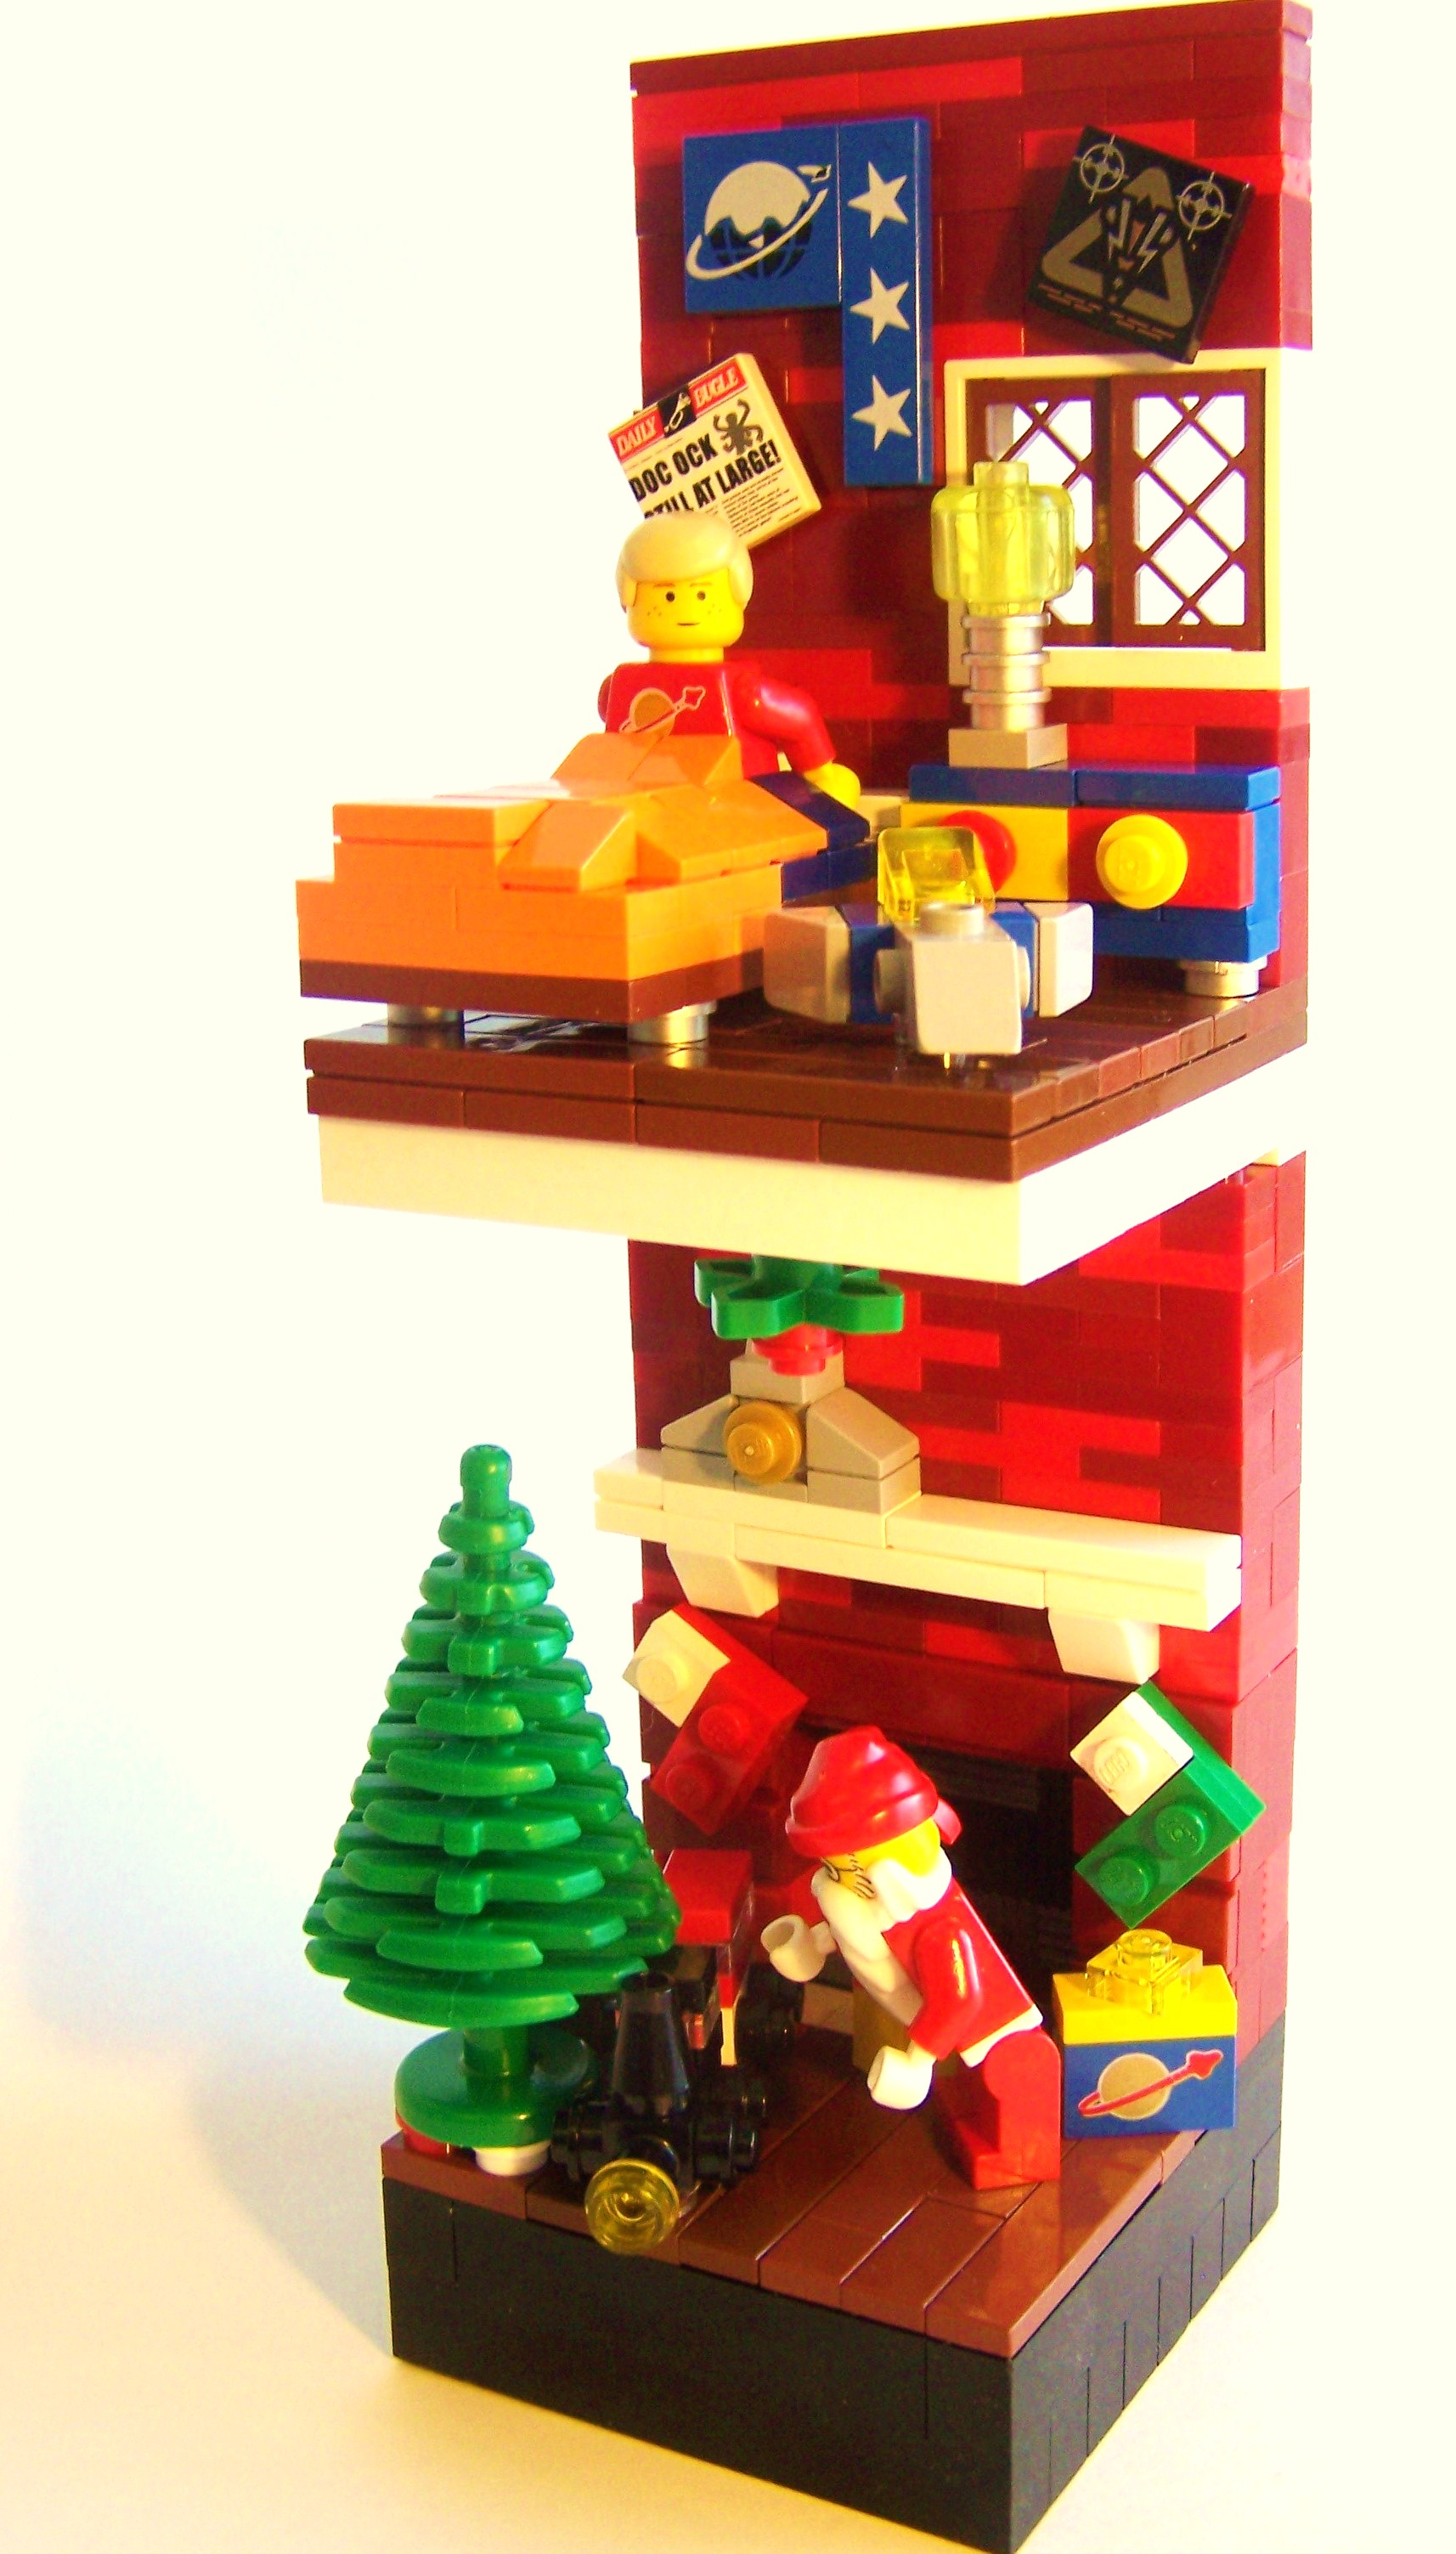 He Knows When You Are Sleeping Red LEGO Brick MOC by Dave Shaddix on Flickr